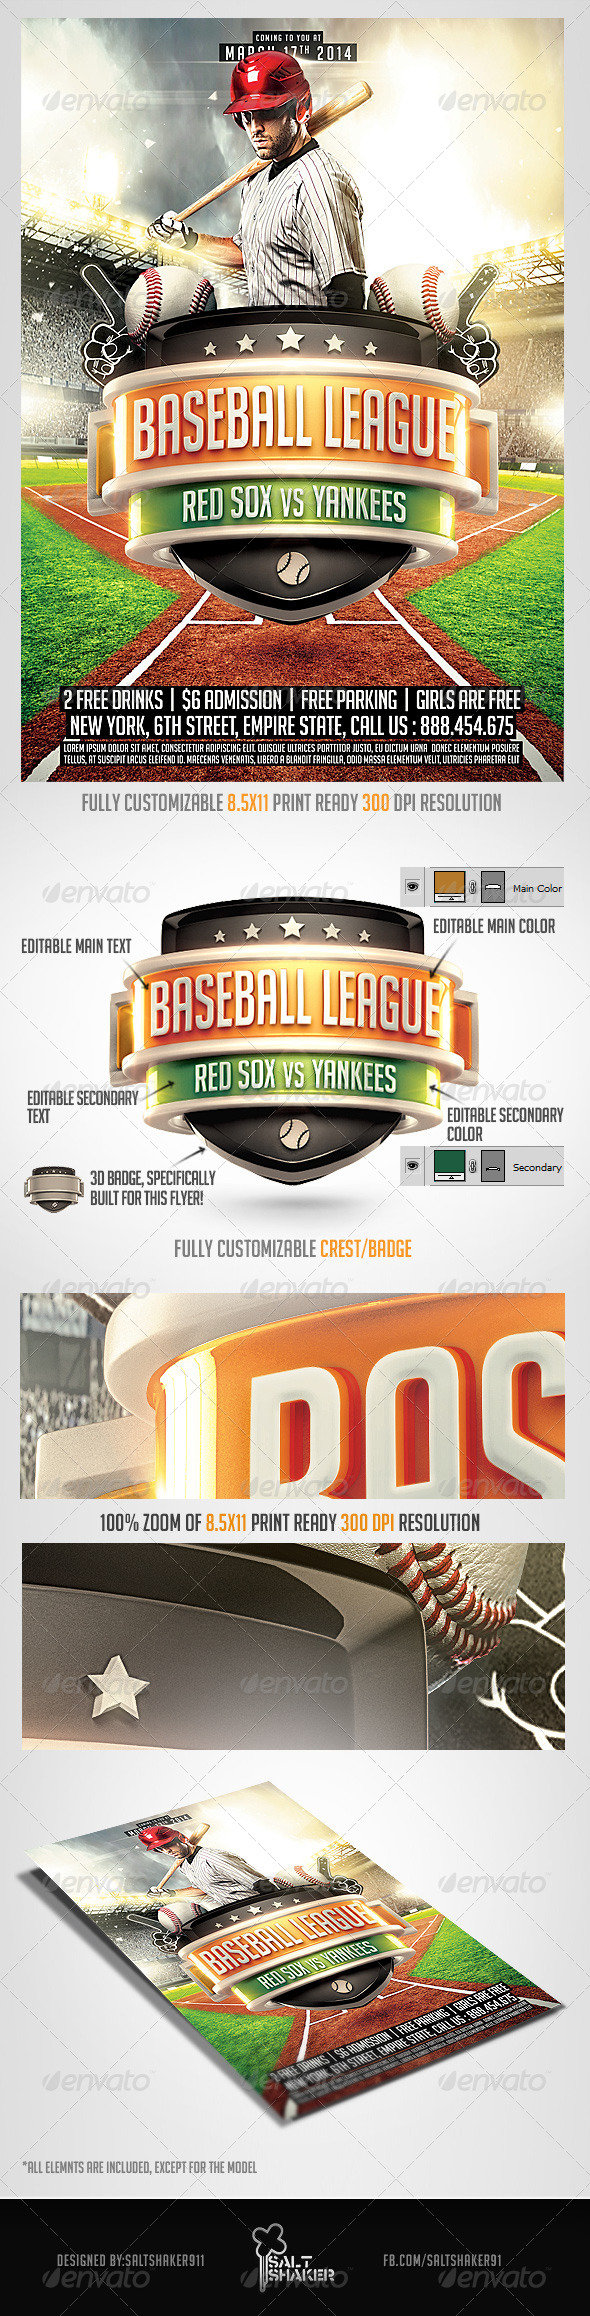 GraphicRiver Baseball League Flyer Template 7104401